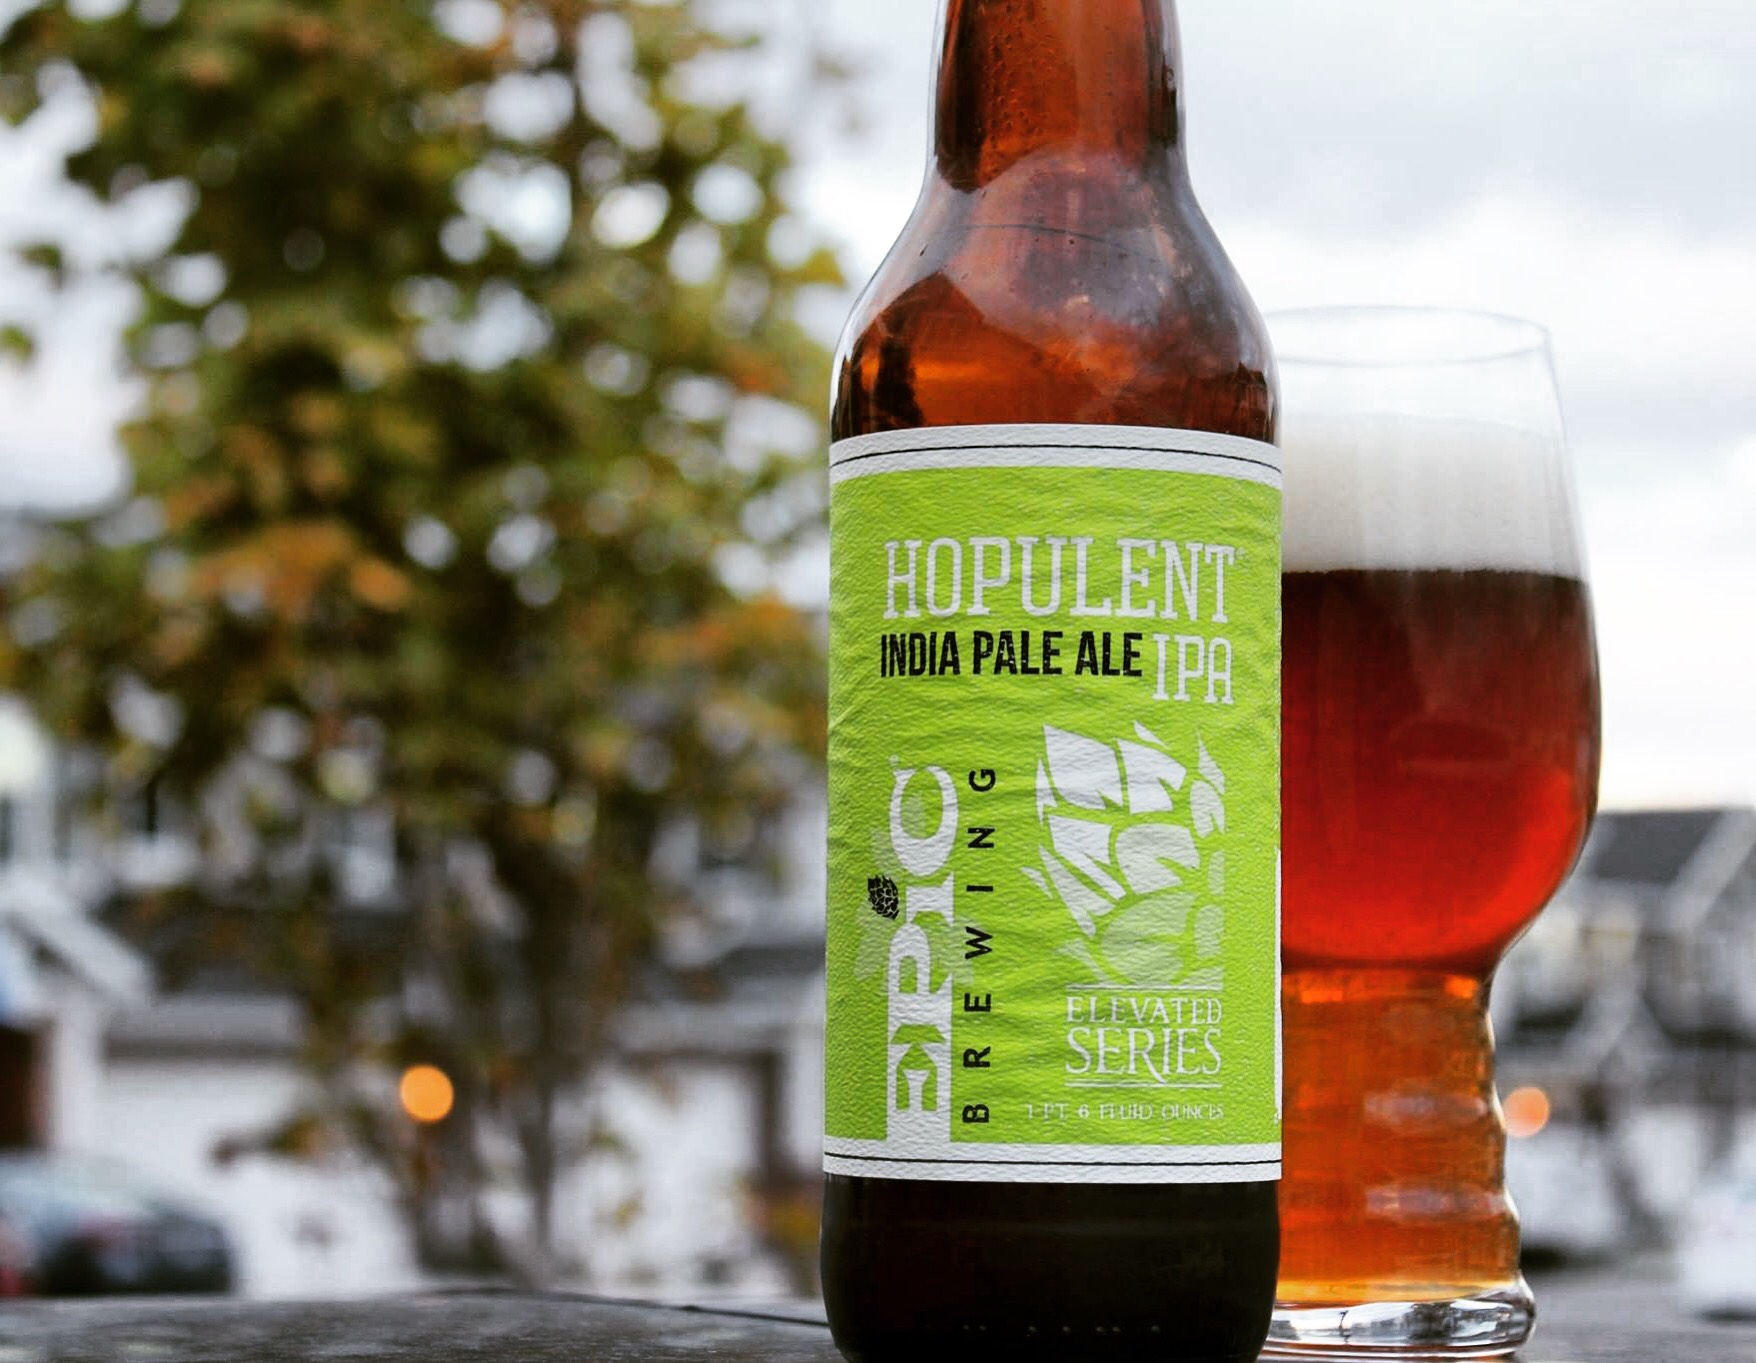 epic-brewing-company-hopulent-ipa